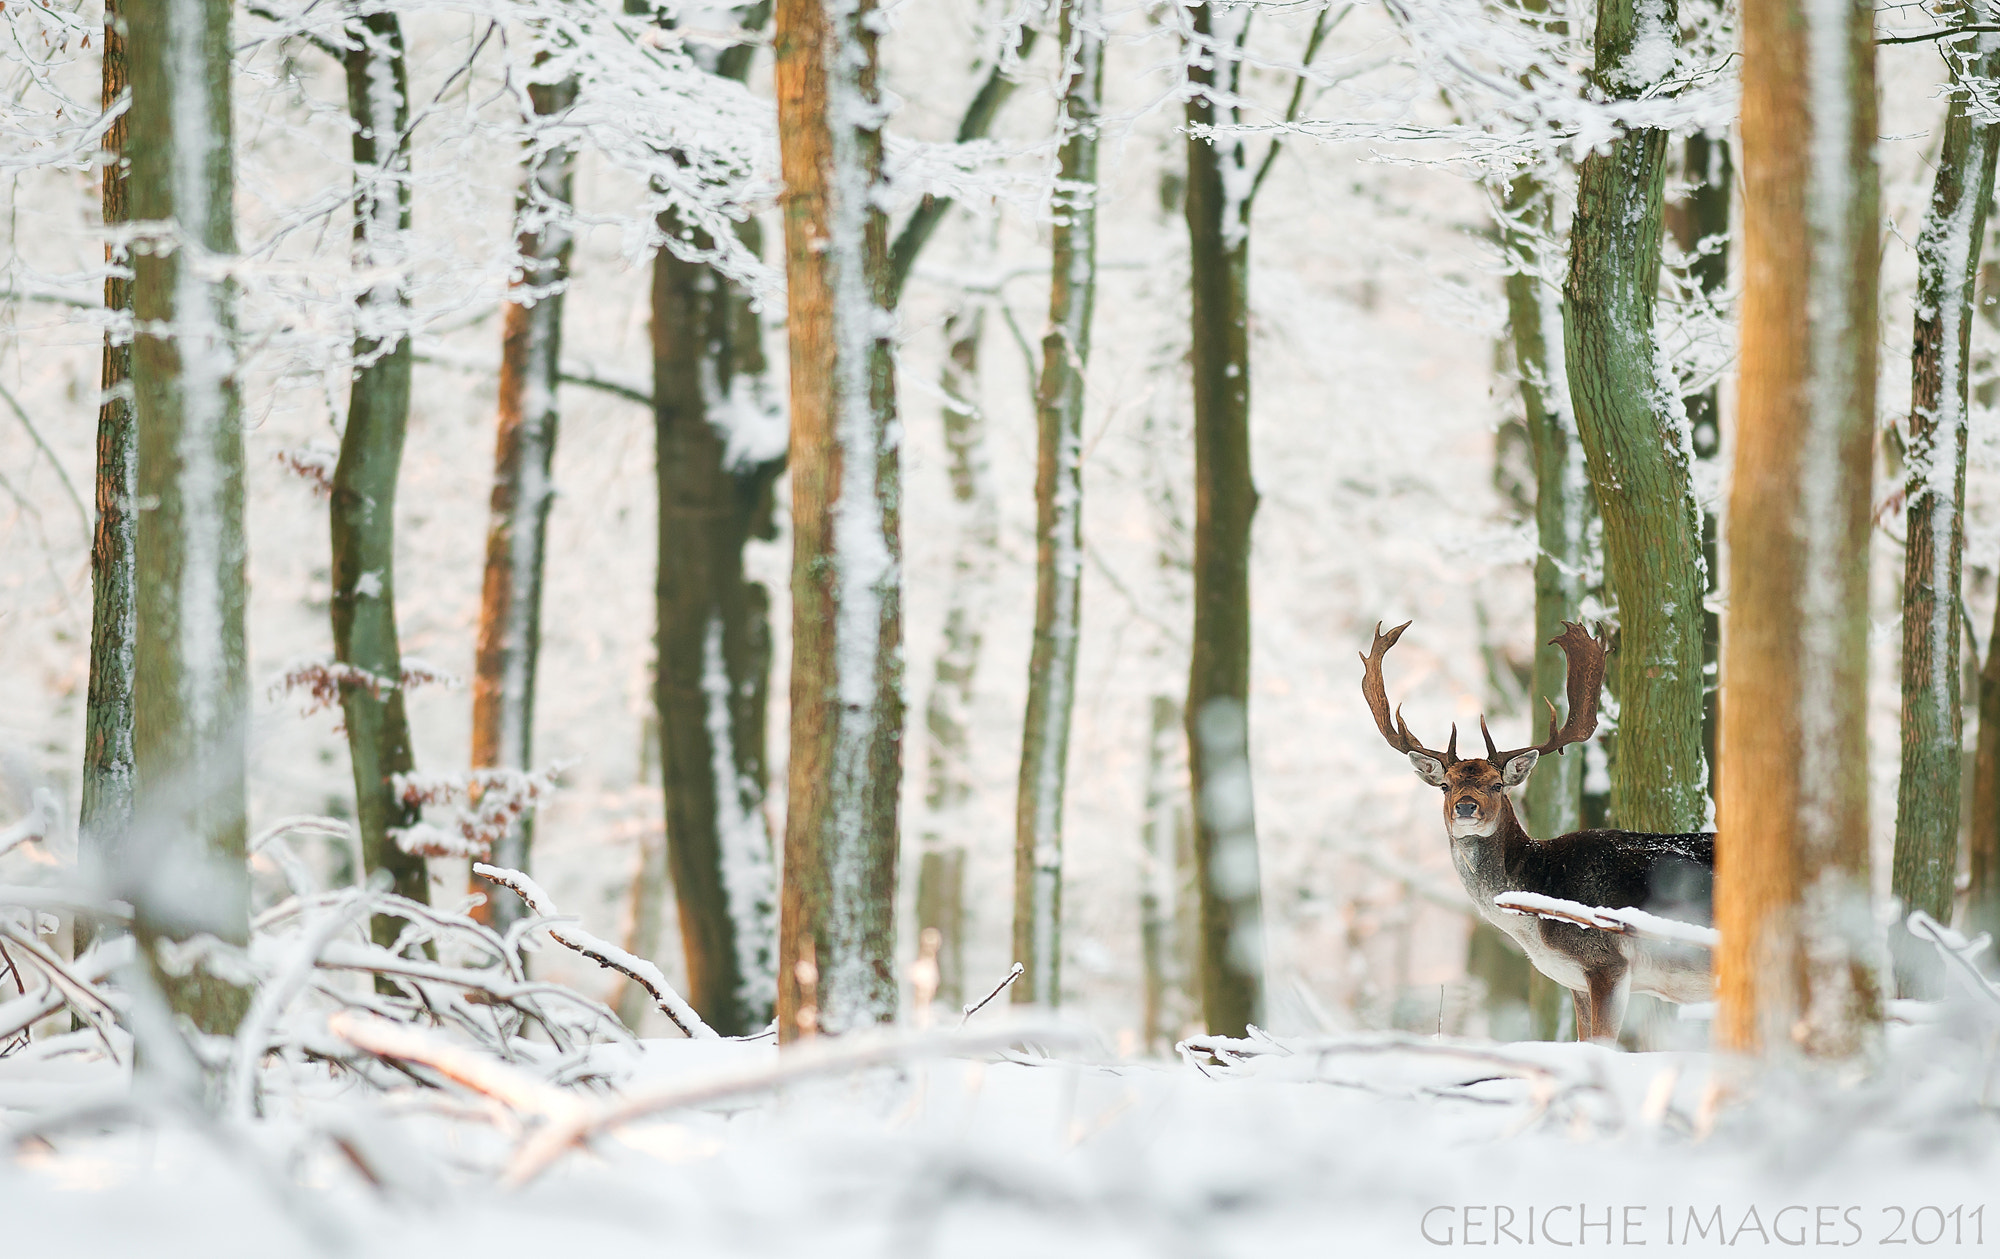 Photograph The Deer by Geriche  Images on 500px